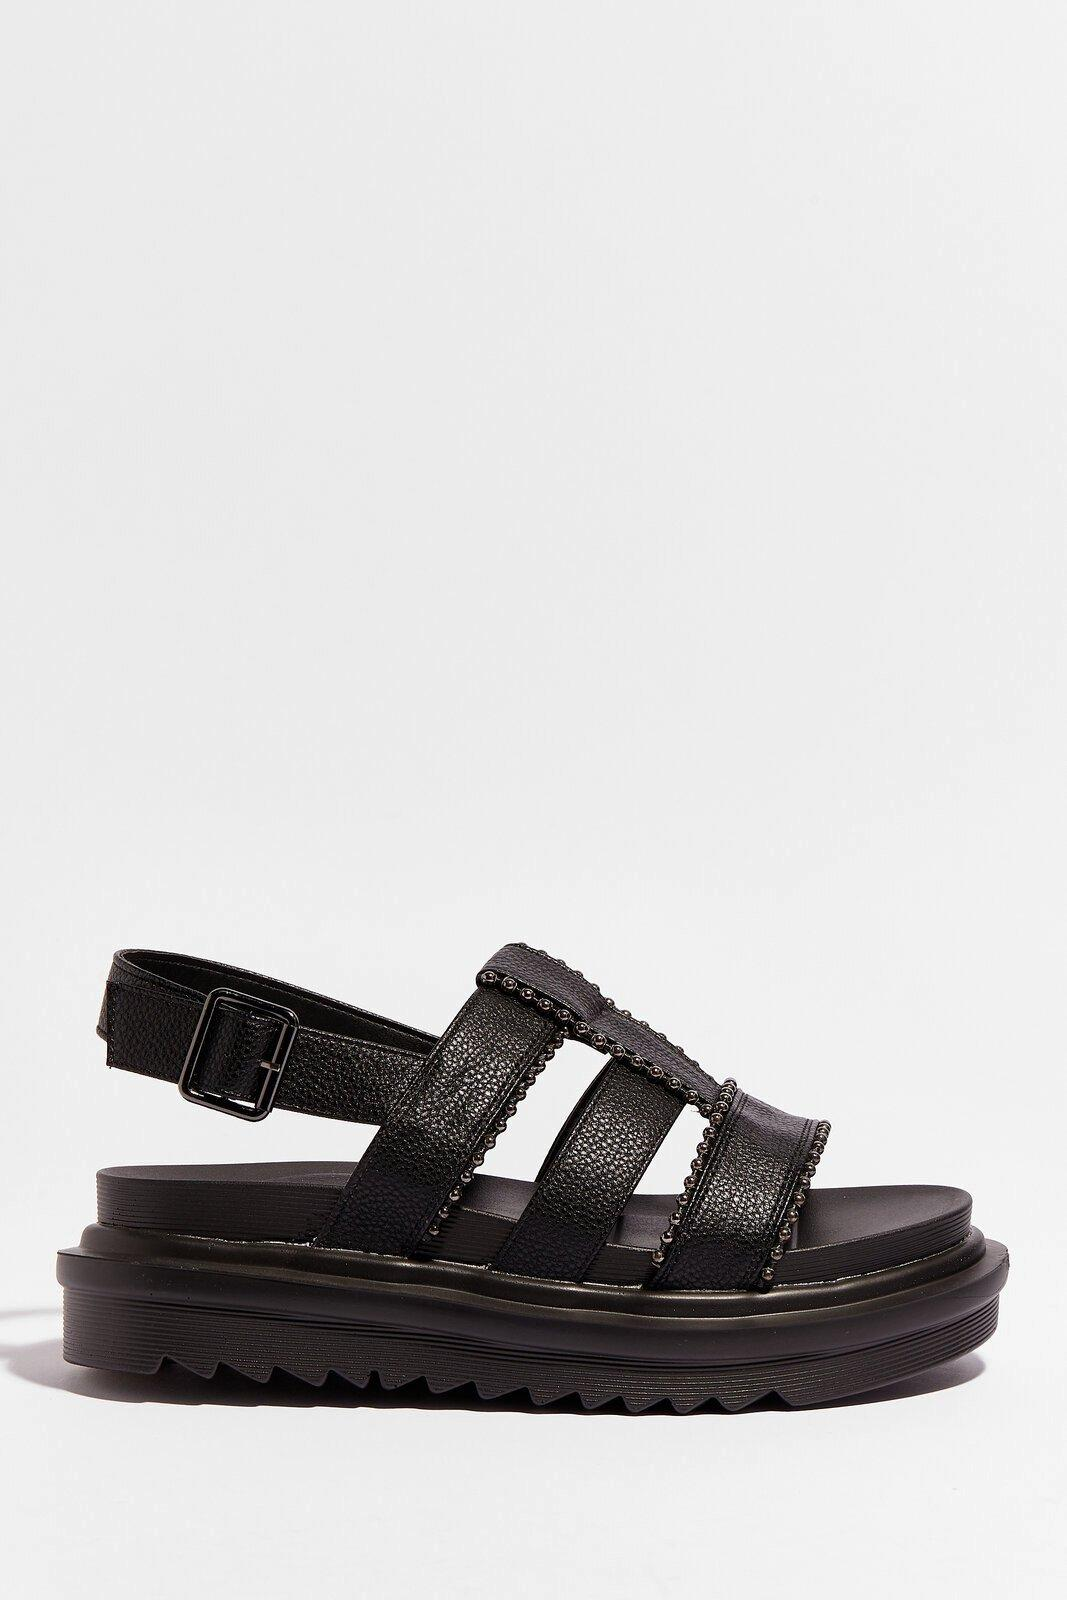 Image of Womens Strap to Reality Faux Leather Chunky Sandals - Black